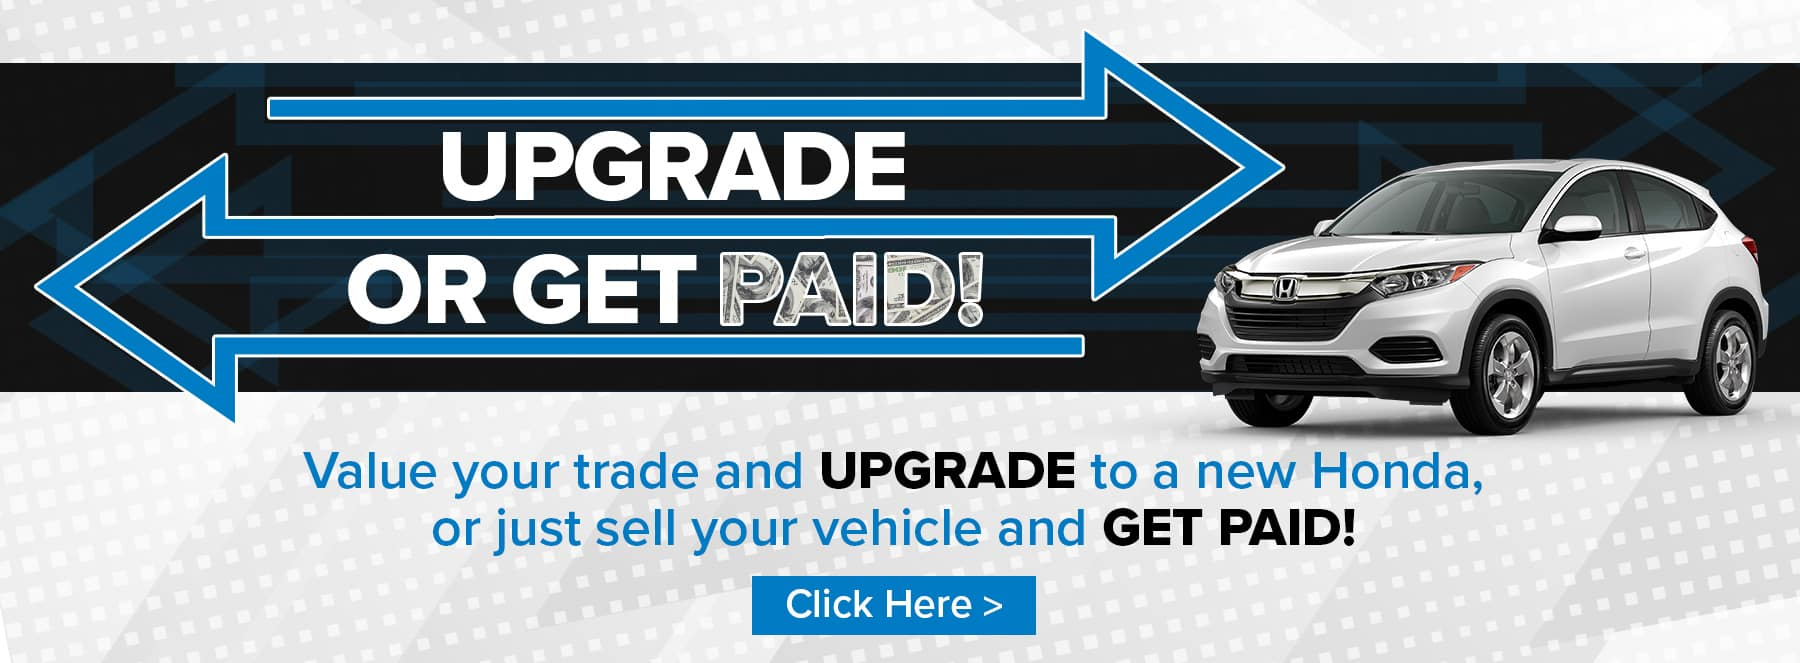 Upgrade or get paid